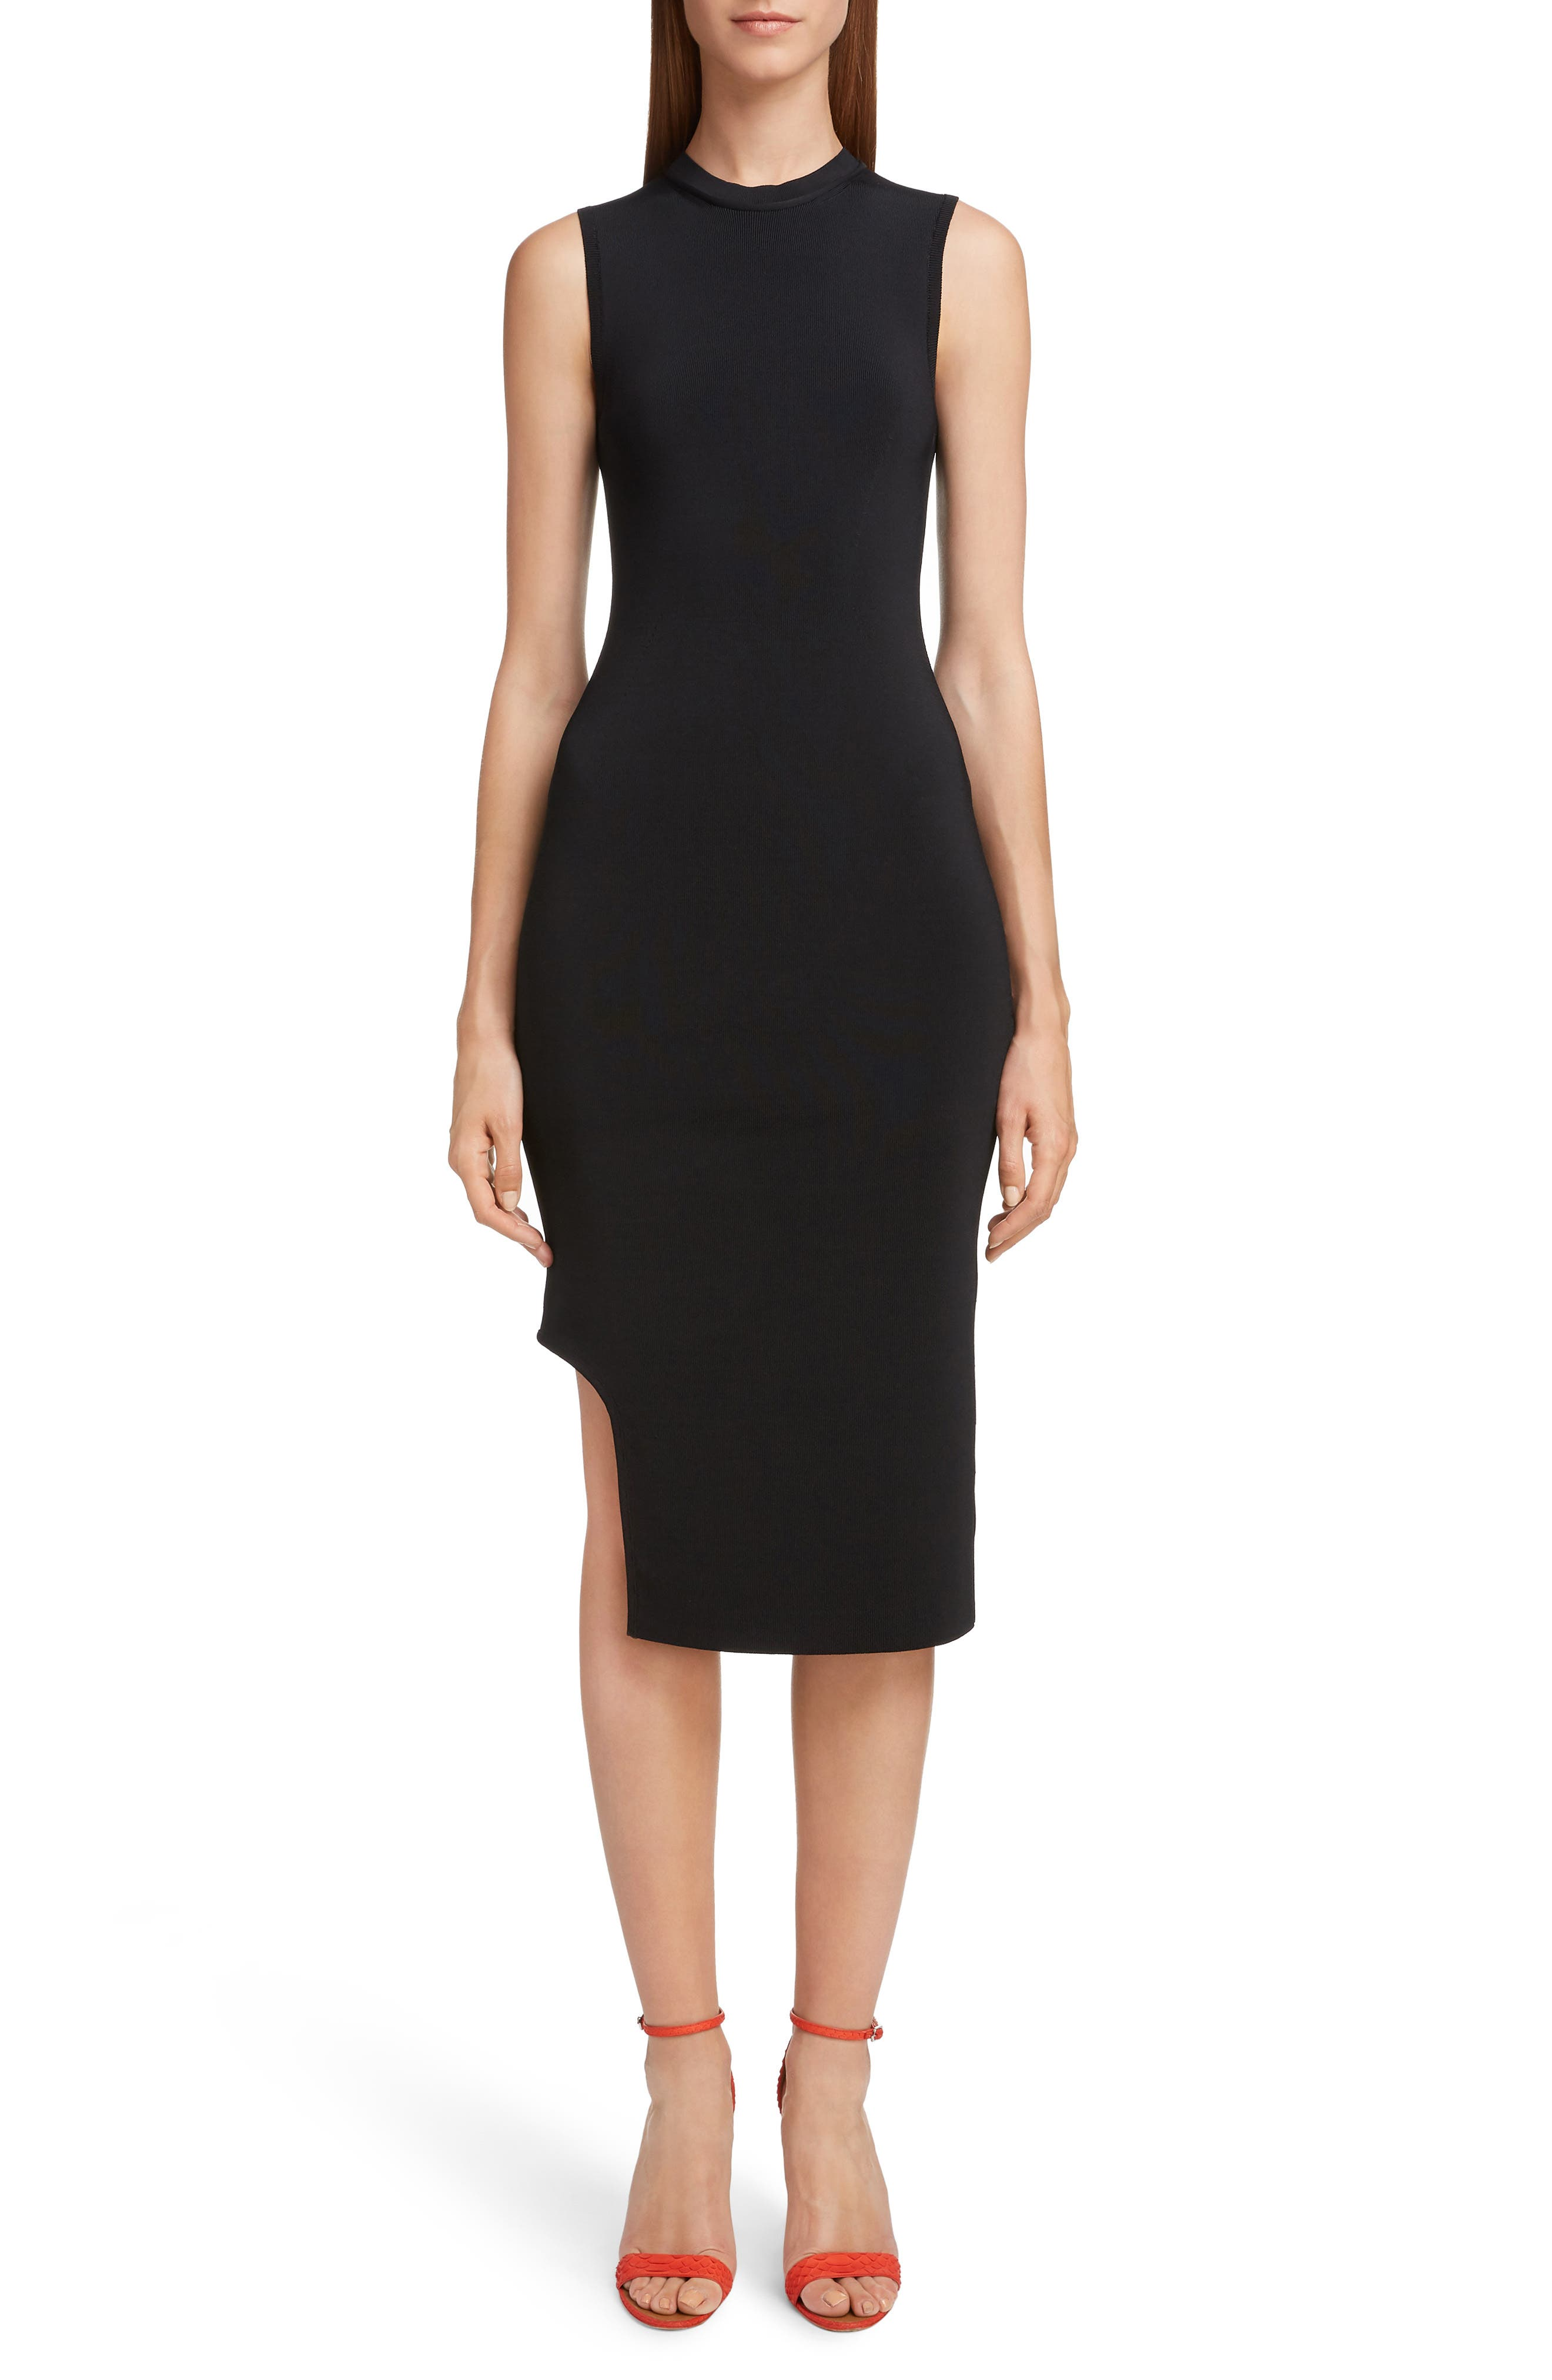 Victoria Beckham Cutout Knit Dress, Black